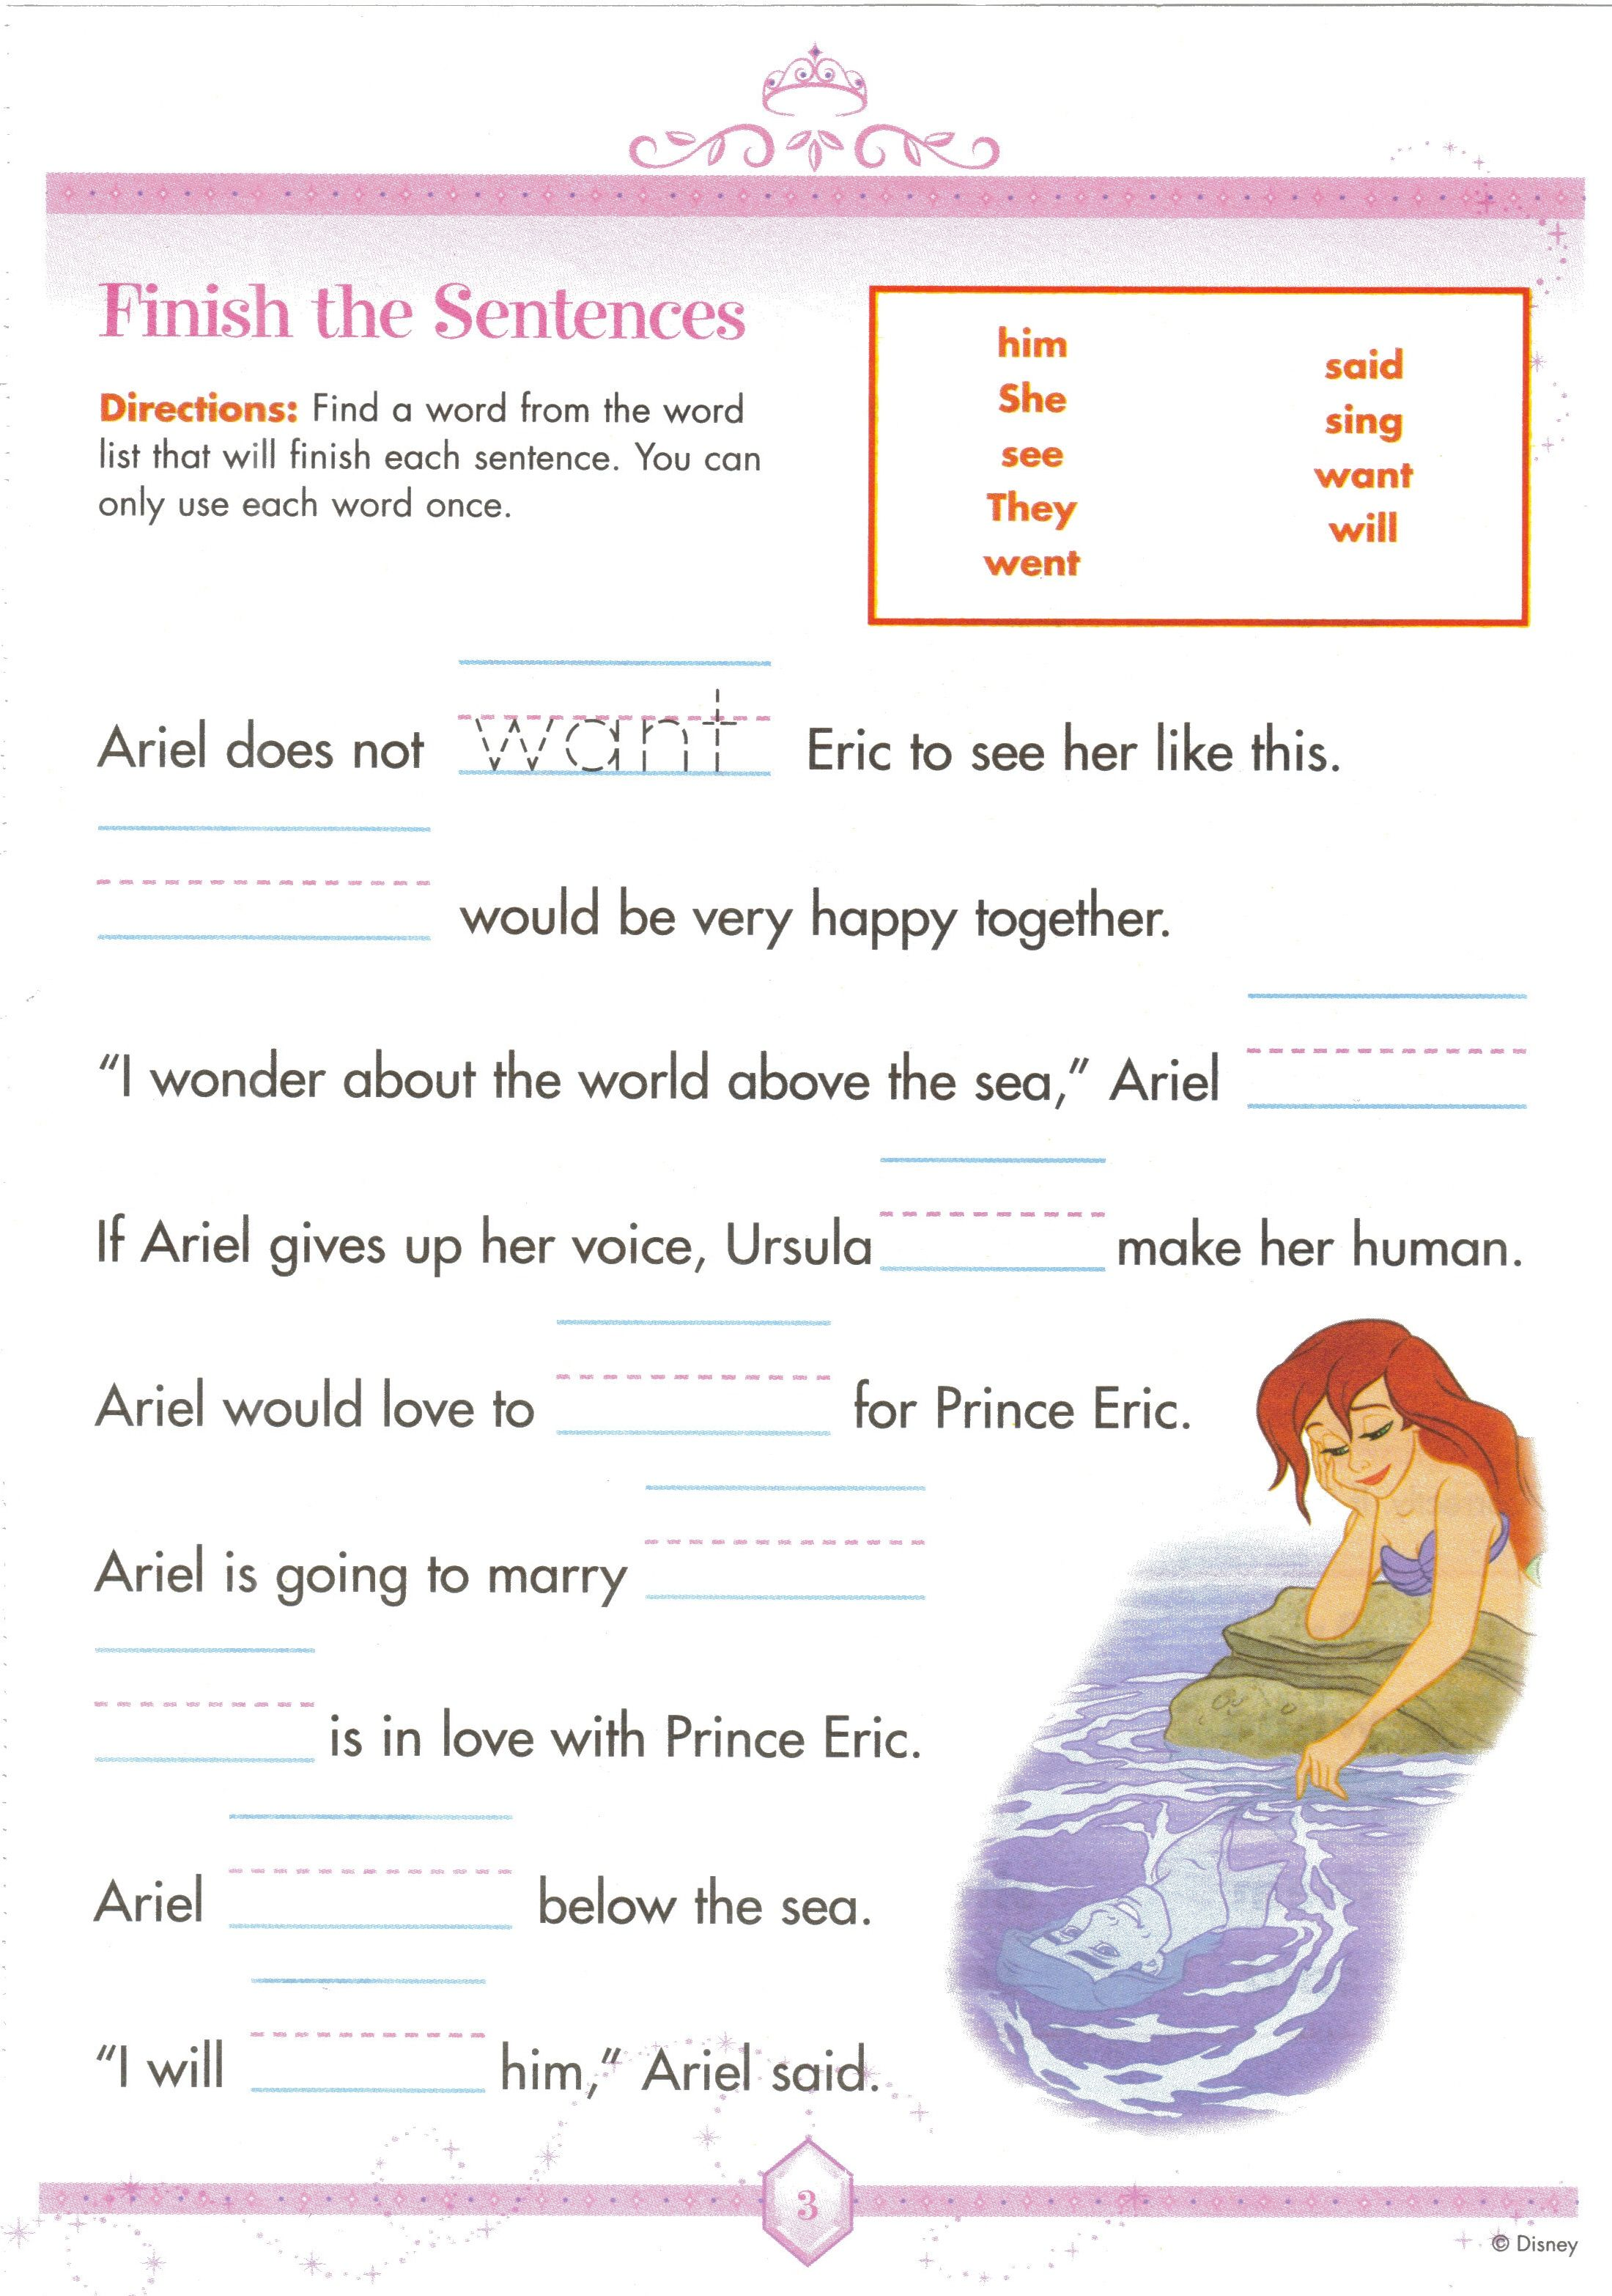 Weirdmailus  Terrific  Images About Worksheets On Pinterest  Fun Facts For Kids  With Fascinating  Images About Worksheets On Pinterest  Fun Facts For Kids Earth Day Worksheets And Jungles With Extraordinary Comma Worksheets With Answers Also Fifth Grade Ela Worksheets In Addition Cause And Effects Worksheets And Algebra Online Worksheets As Well As Free Math Puzzles Worksheets Additionally Can Could Worksheets From Pinterestcom With Weirdmailus  Fascinating  Images About Worksheets On Pinterest  Fun Facts For Kids  With Extraordinary  Images About Worksheets On Pinterest  Fun Facts For Kids Earth Day Worksheets And Jungles And Terrific Comma Worksheets With Answers Also Fifth Grade Ela Worksheets In Addition Cause And Effects Worksheets From Pinterestcom